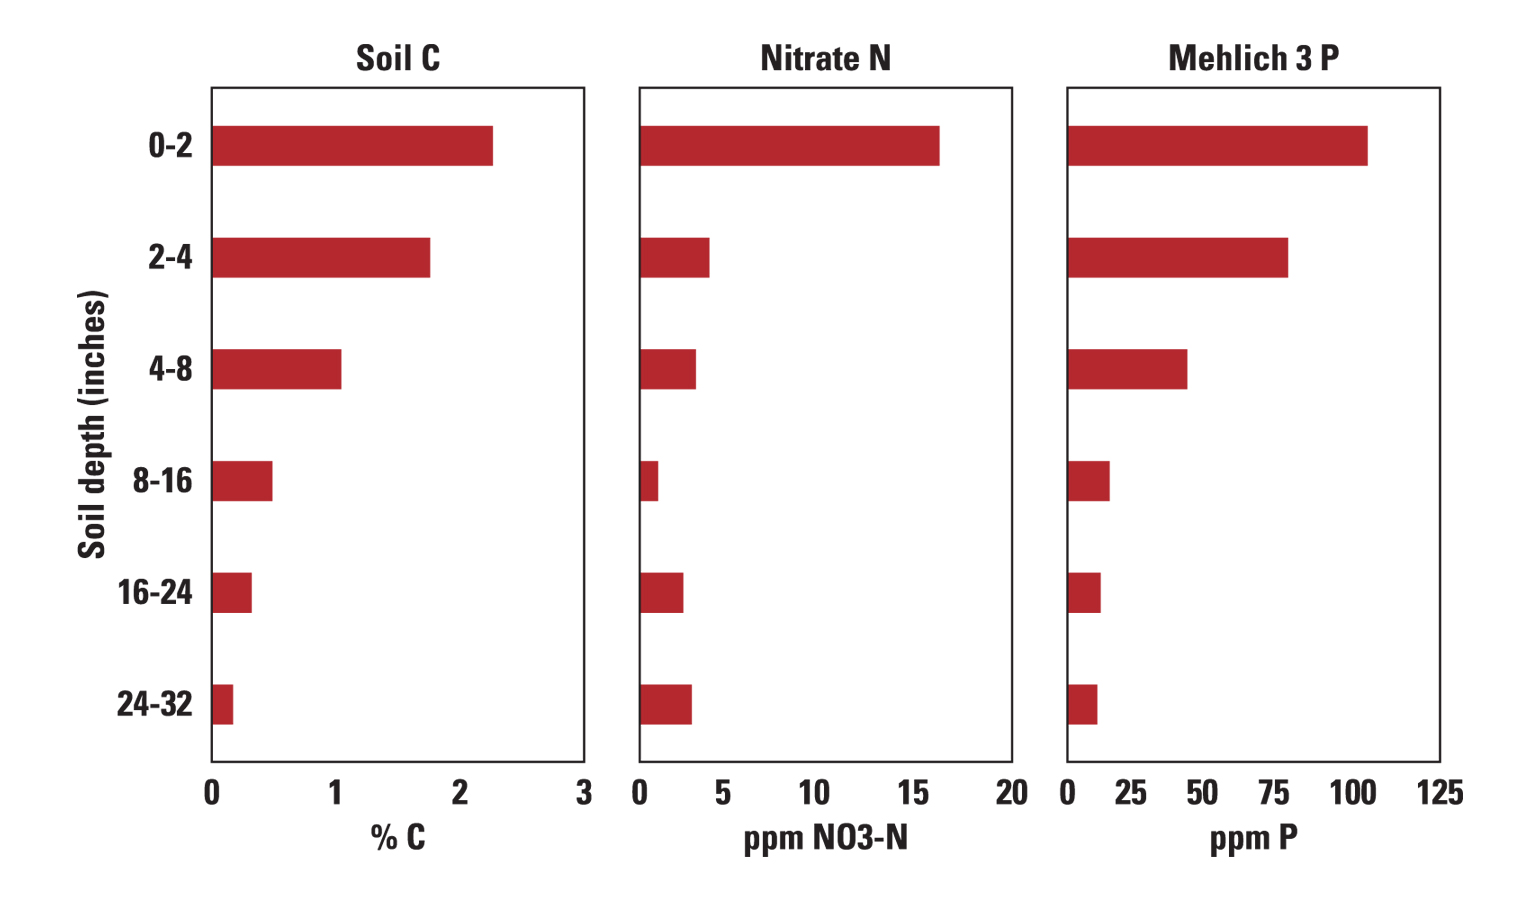 Soil profile carbon, nitrogen, and phosphorus concentrations from a field sampled on a dairy farm in central Pennsylvania